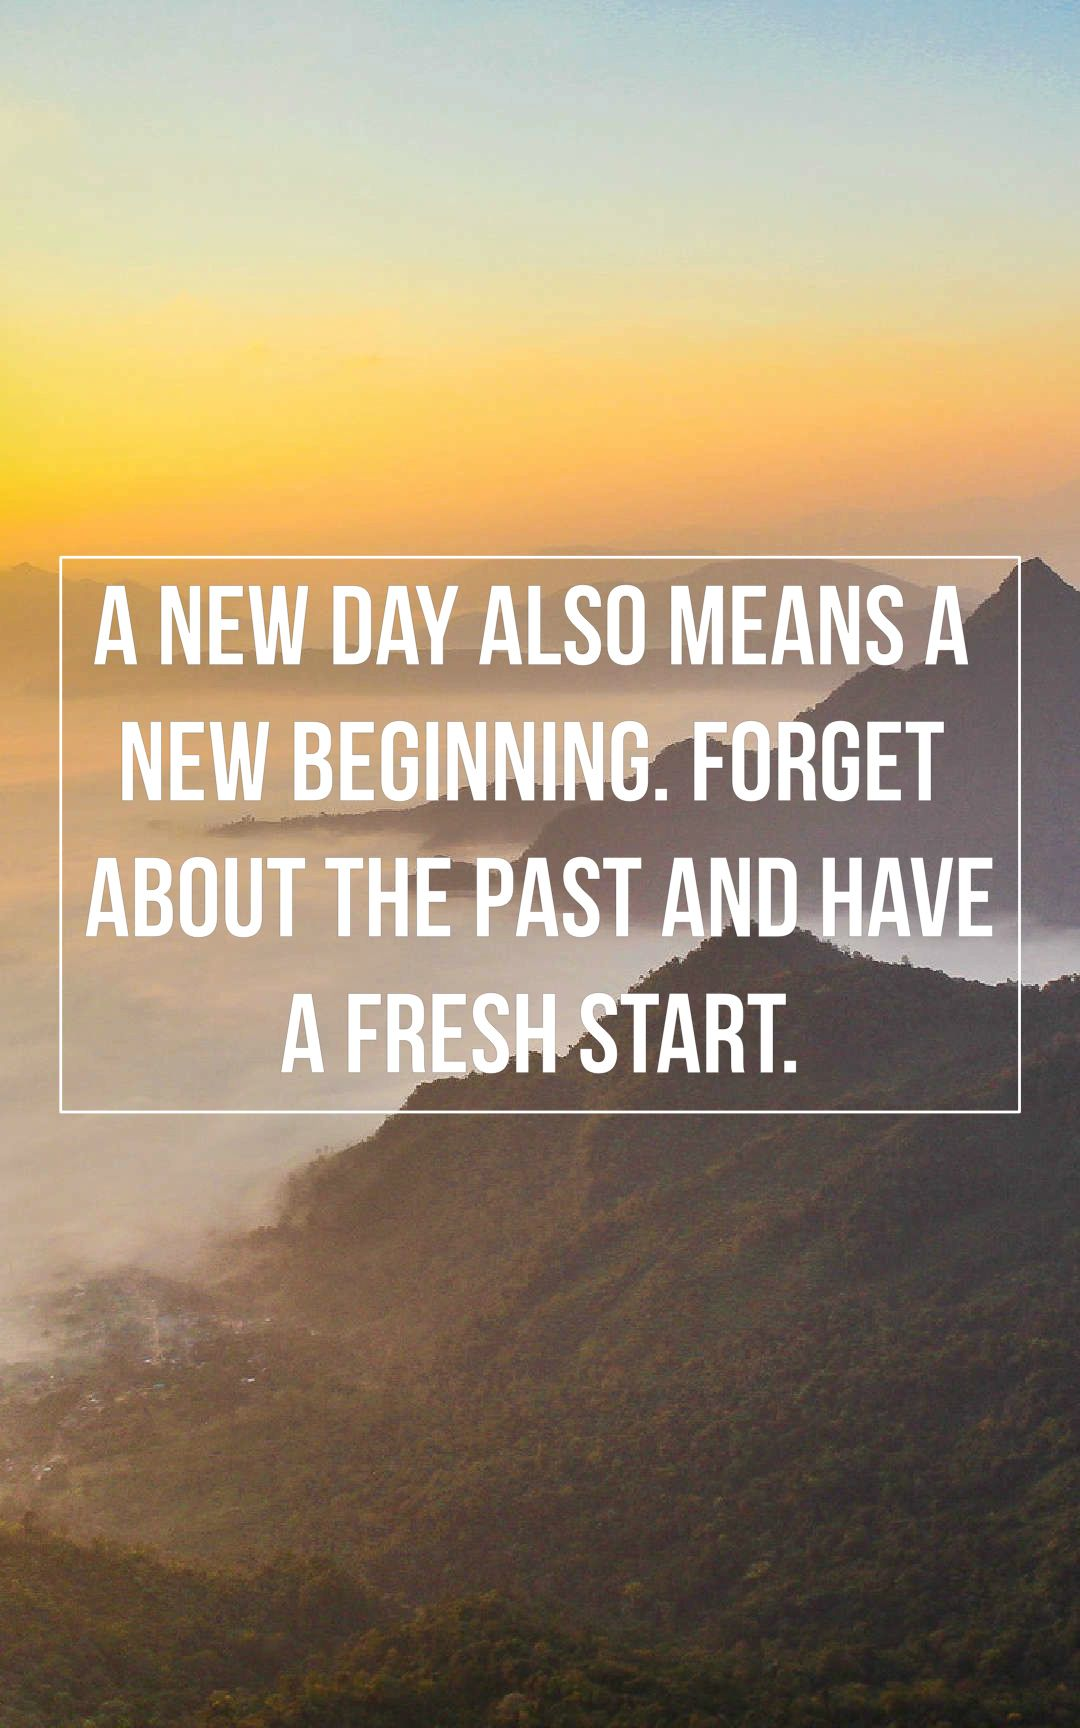 A New Day Also Means A New Beginning Forget About The Past And Have A Fresh Start Good New Life Quotes New Beginning Quotes Good Morning Inspirational Quotes